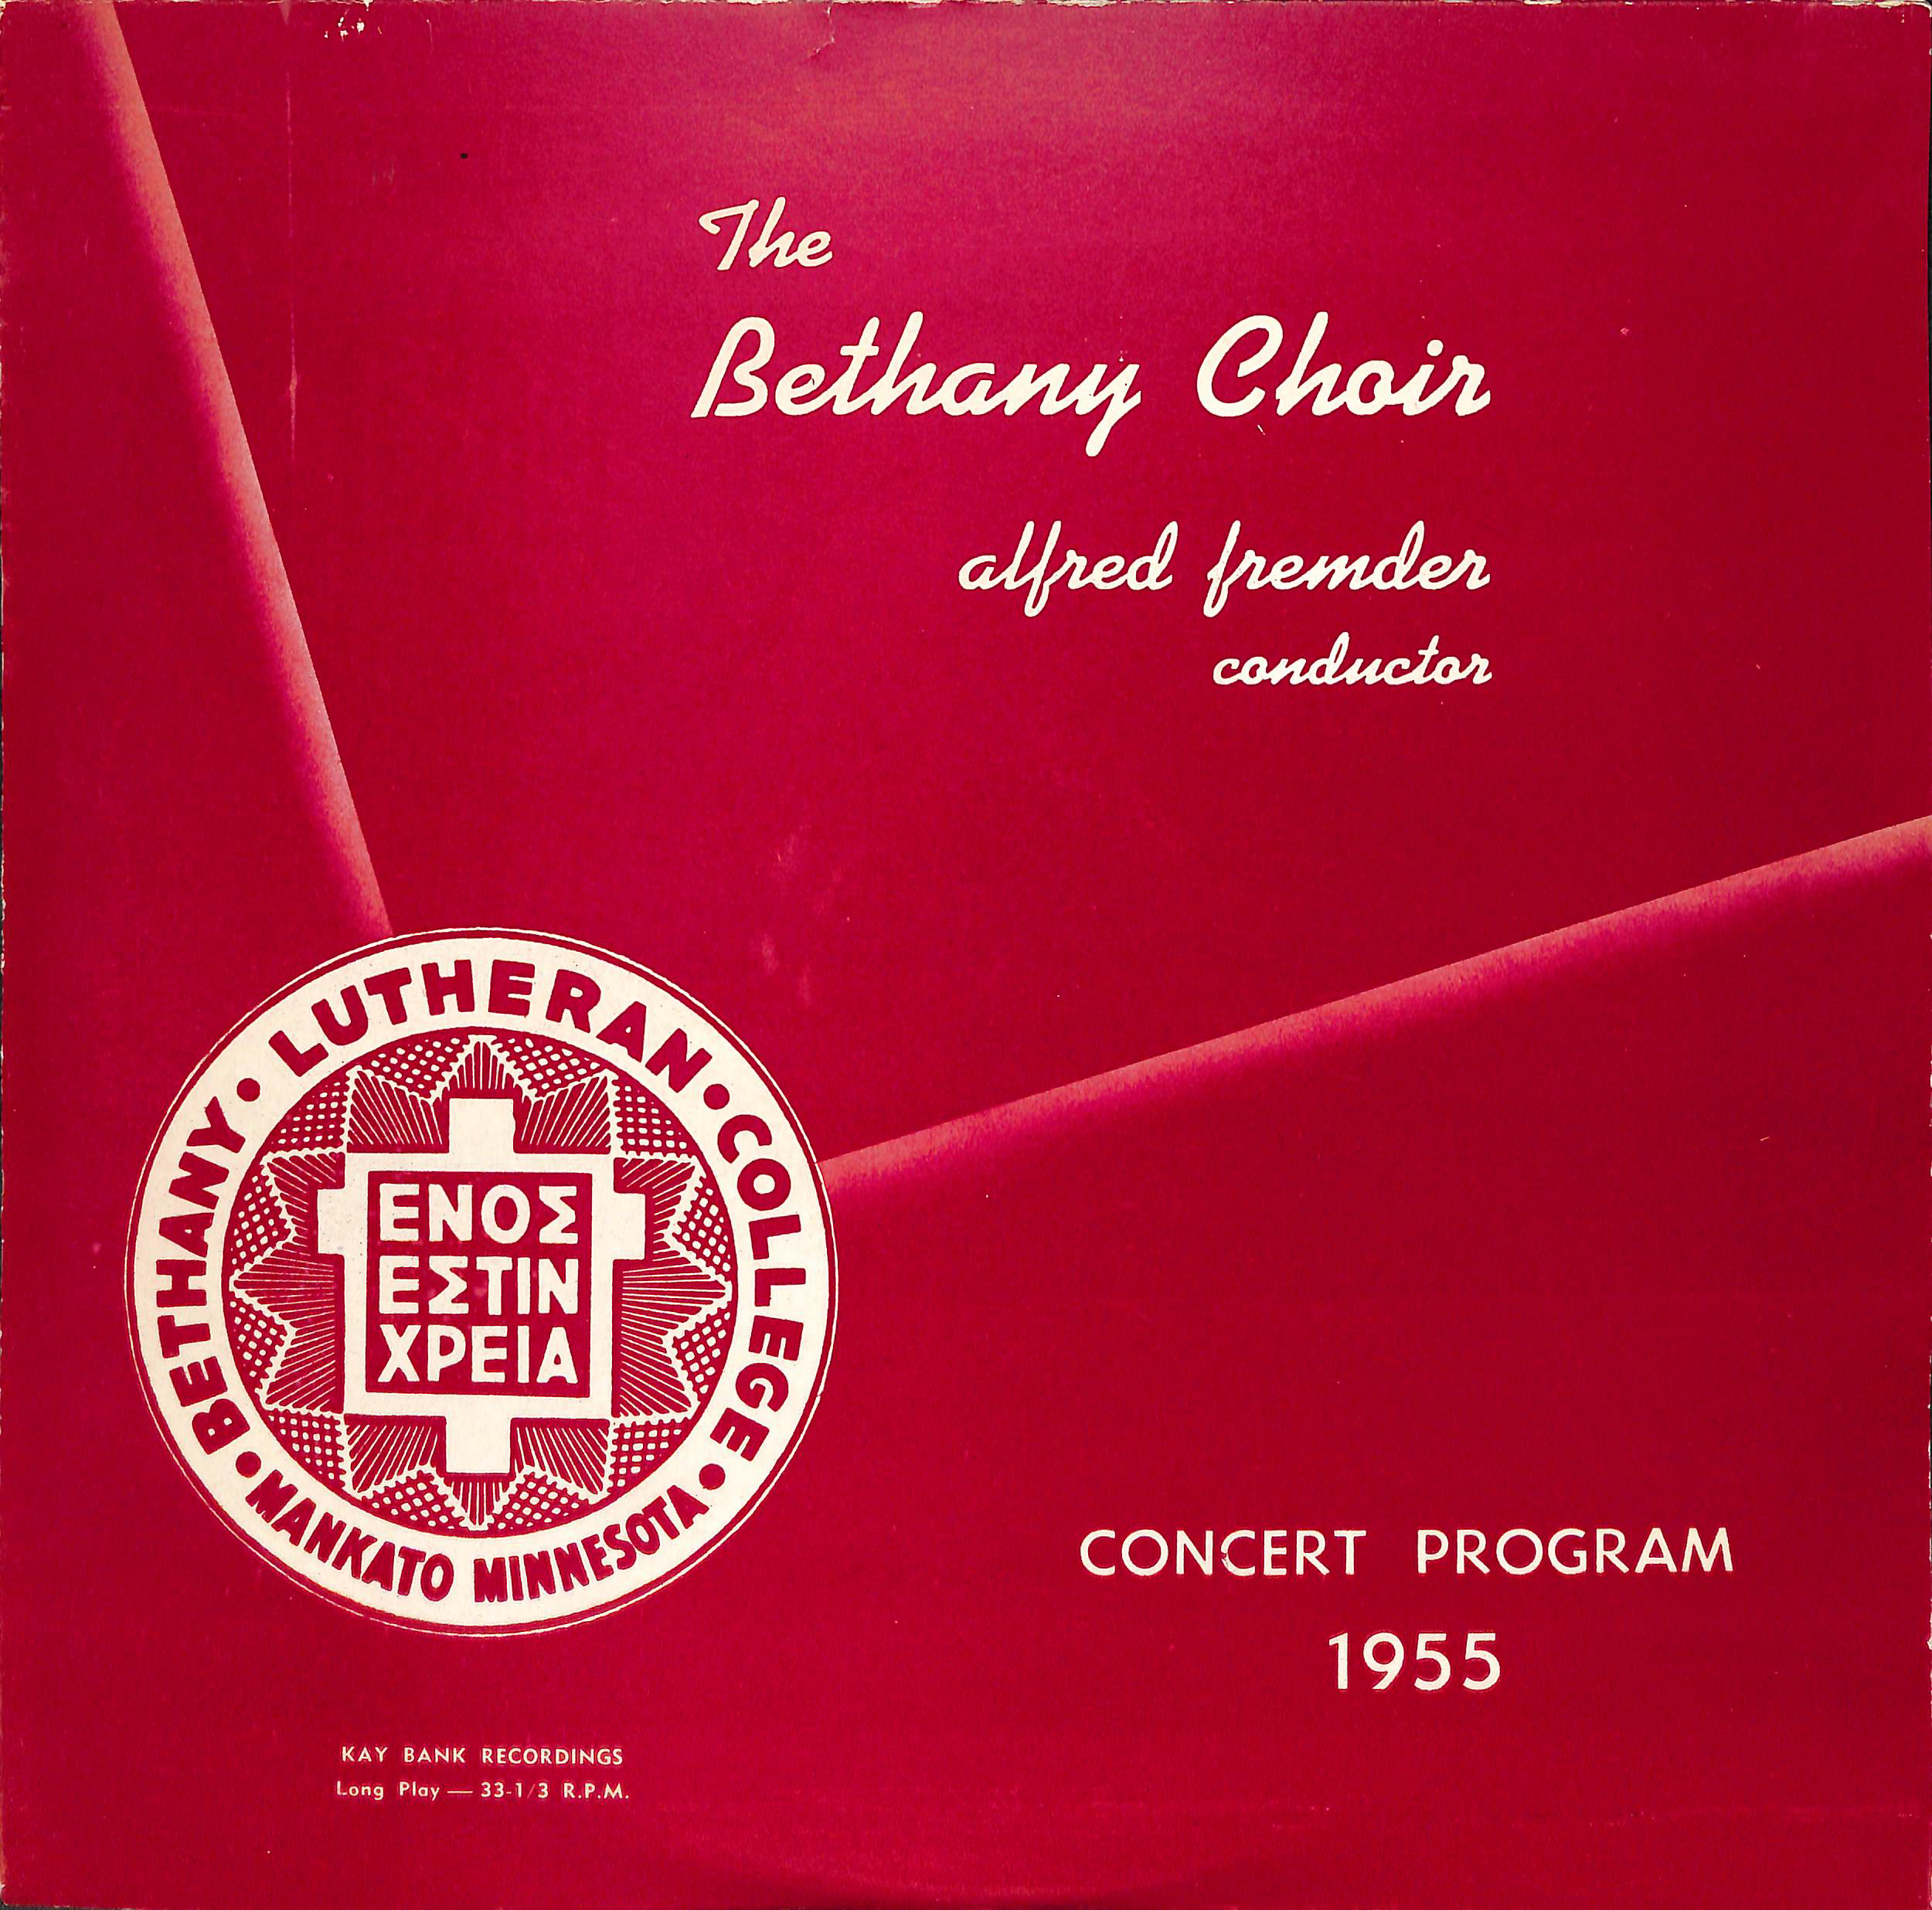 The Bethany Choir 1955: Concert Program